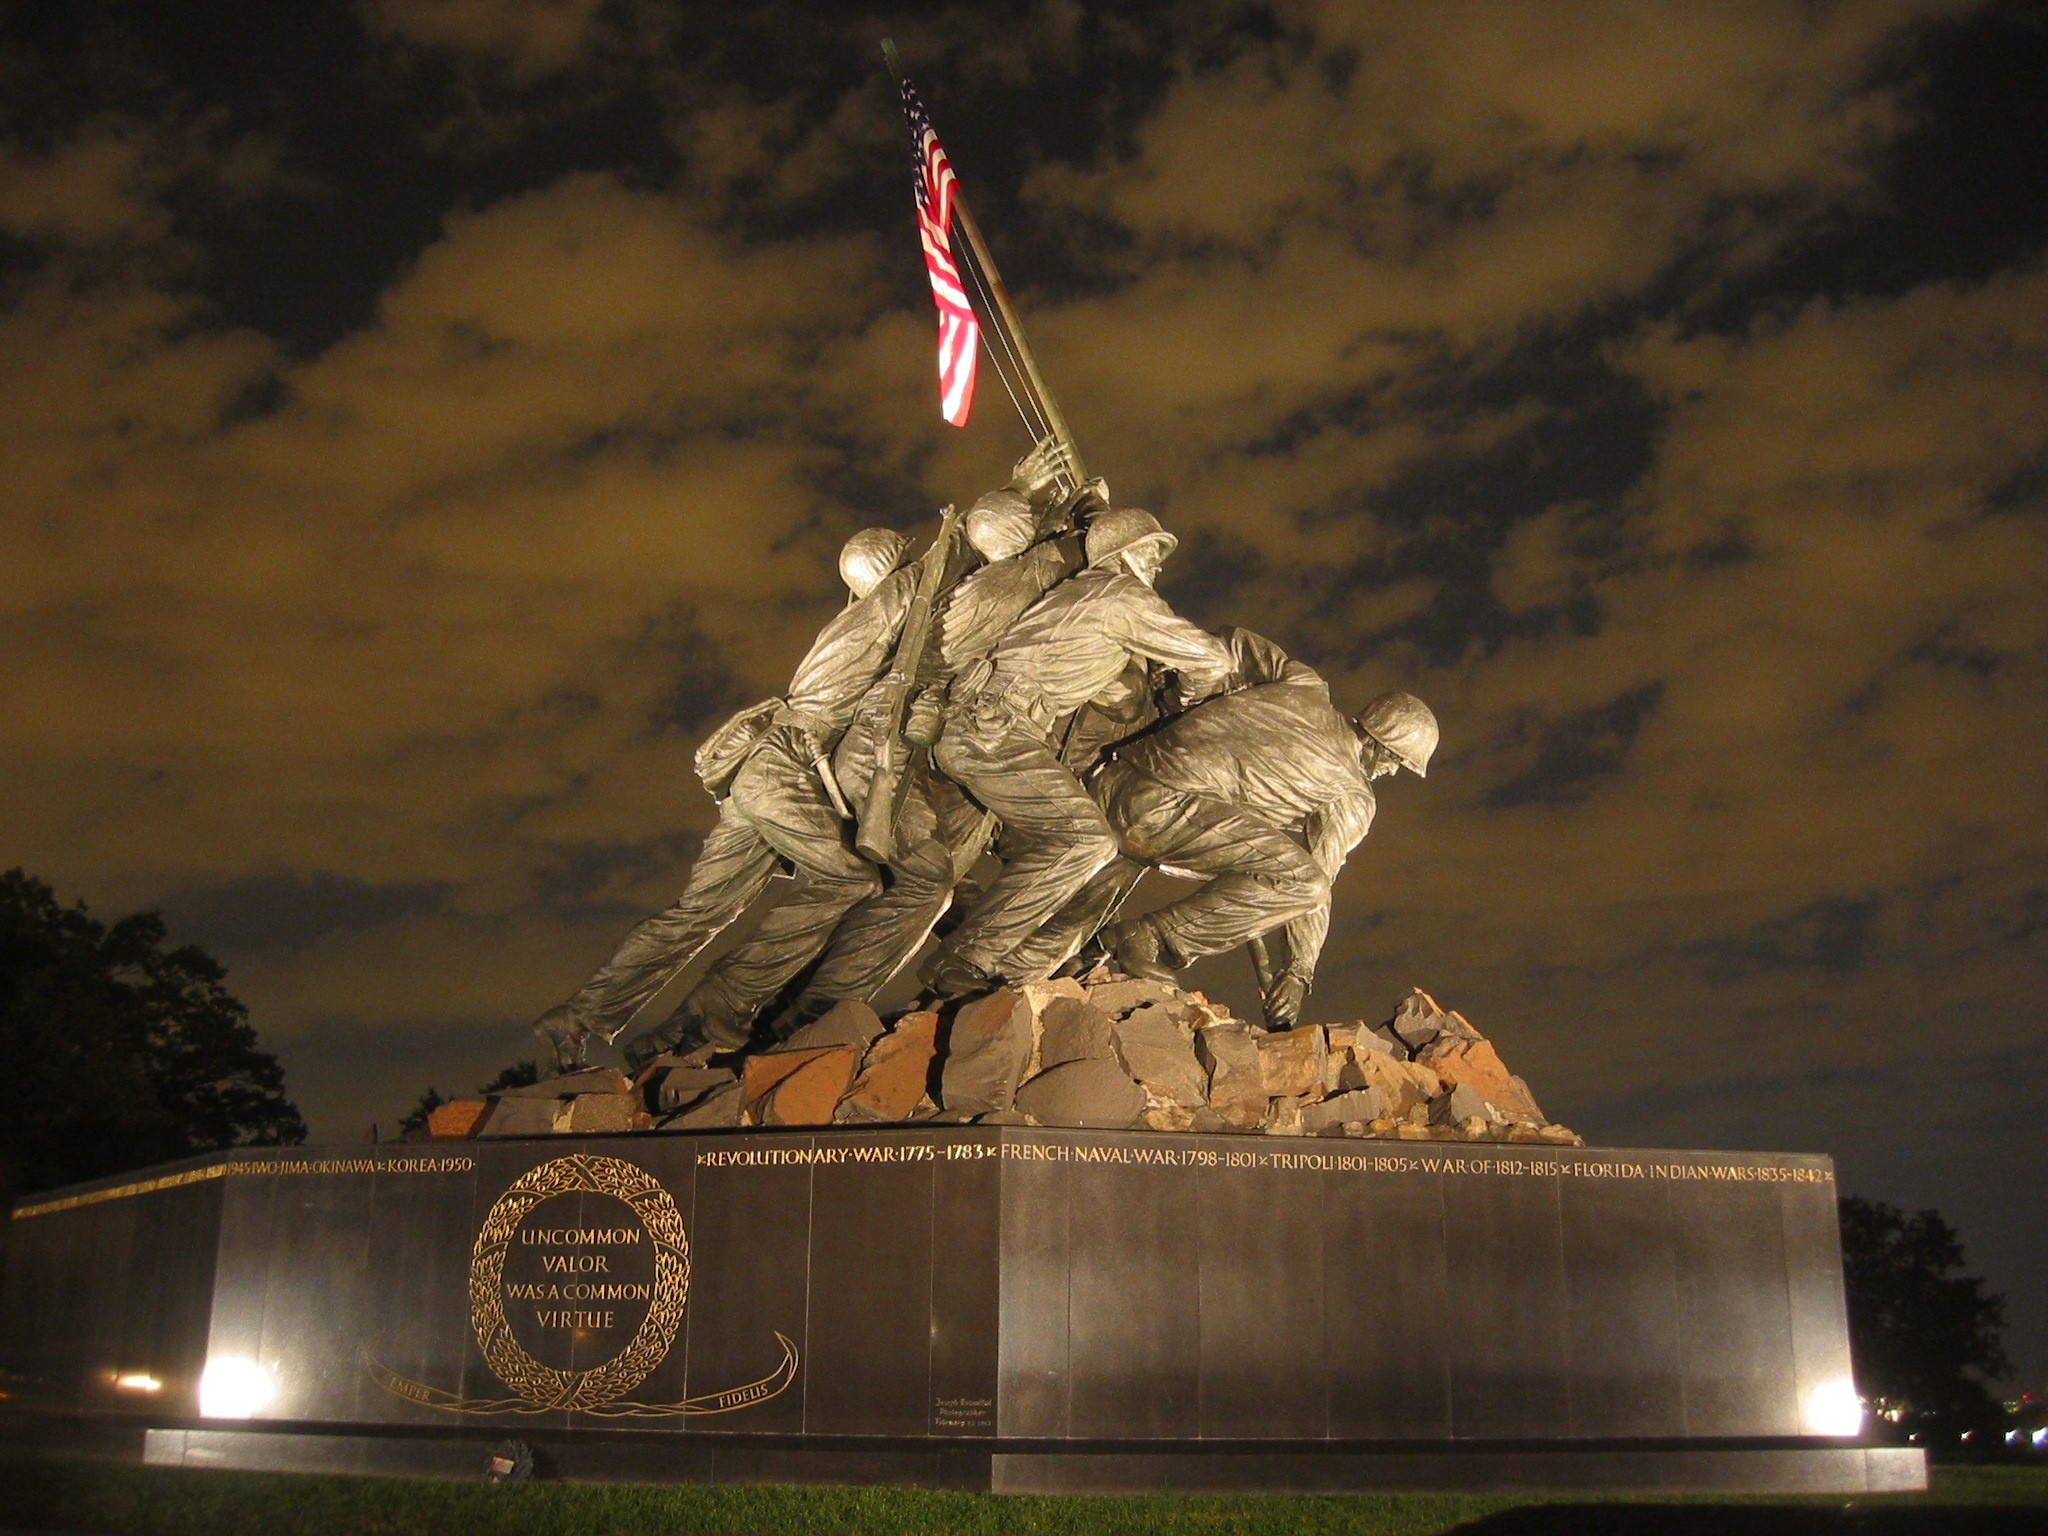 https://upload.wikimedia.org/wikipedia/commons/6/67/USMC_War_Memorial_Night.jpg